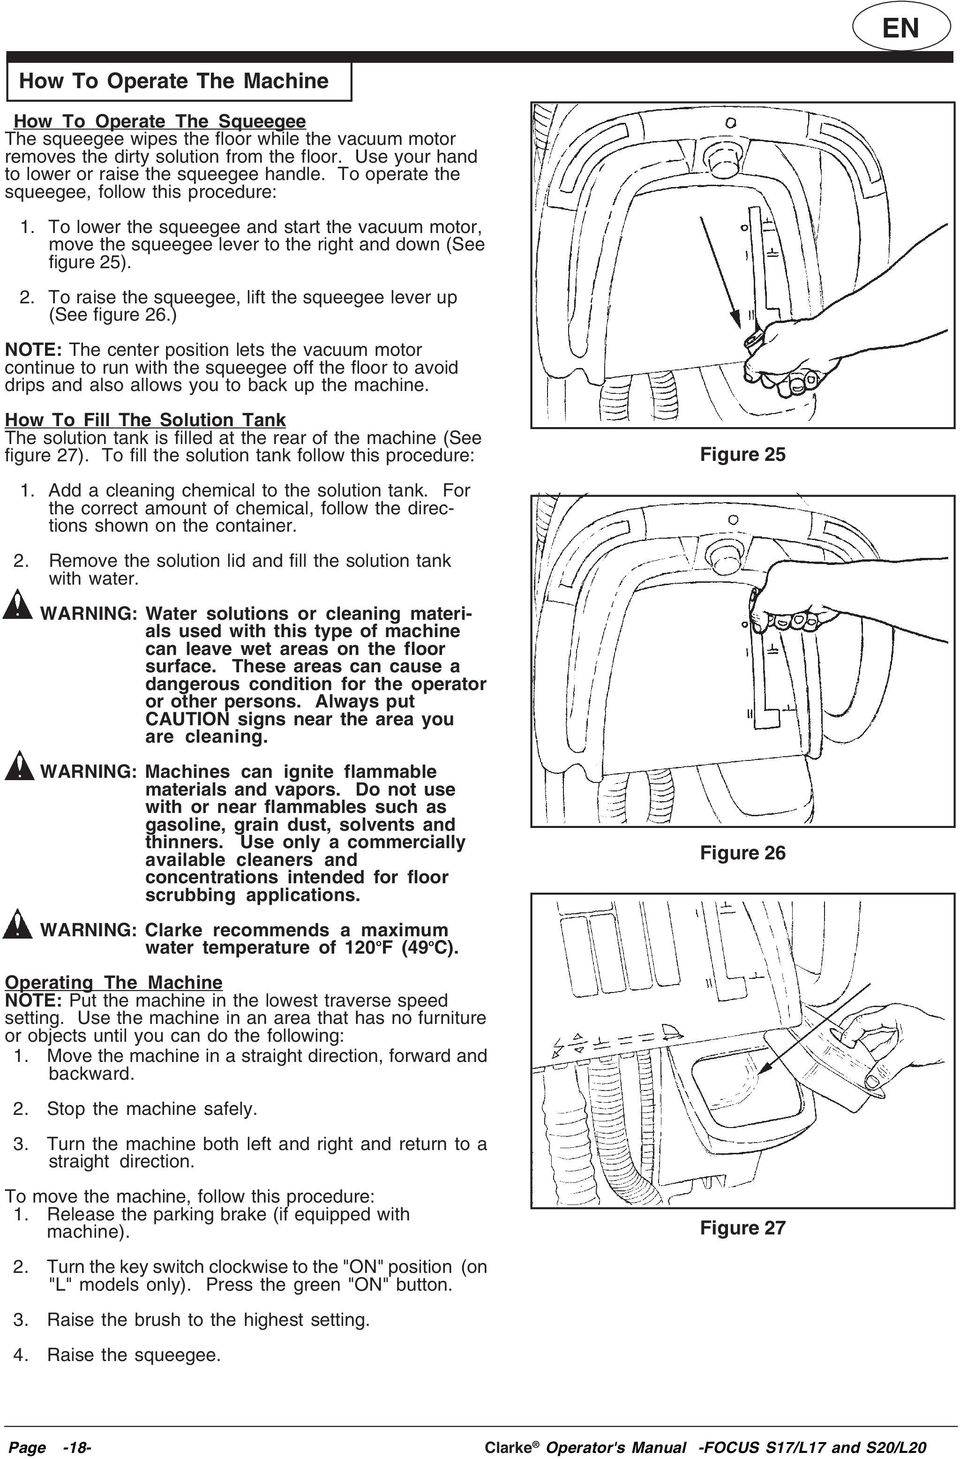 To lower the squeegee and start the vacuum motor, move the squeegee lever to the right and down (See figure 25). 2. To raise the squeegee, lift the squeegee lever up (See figure 26.